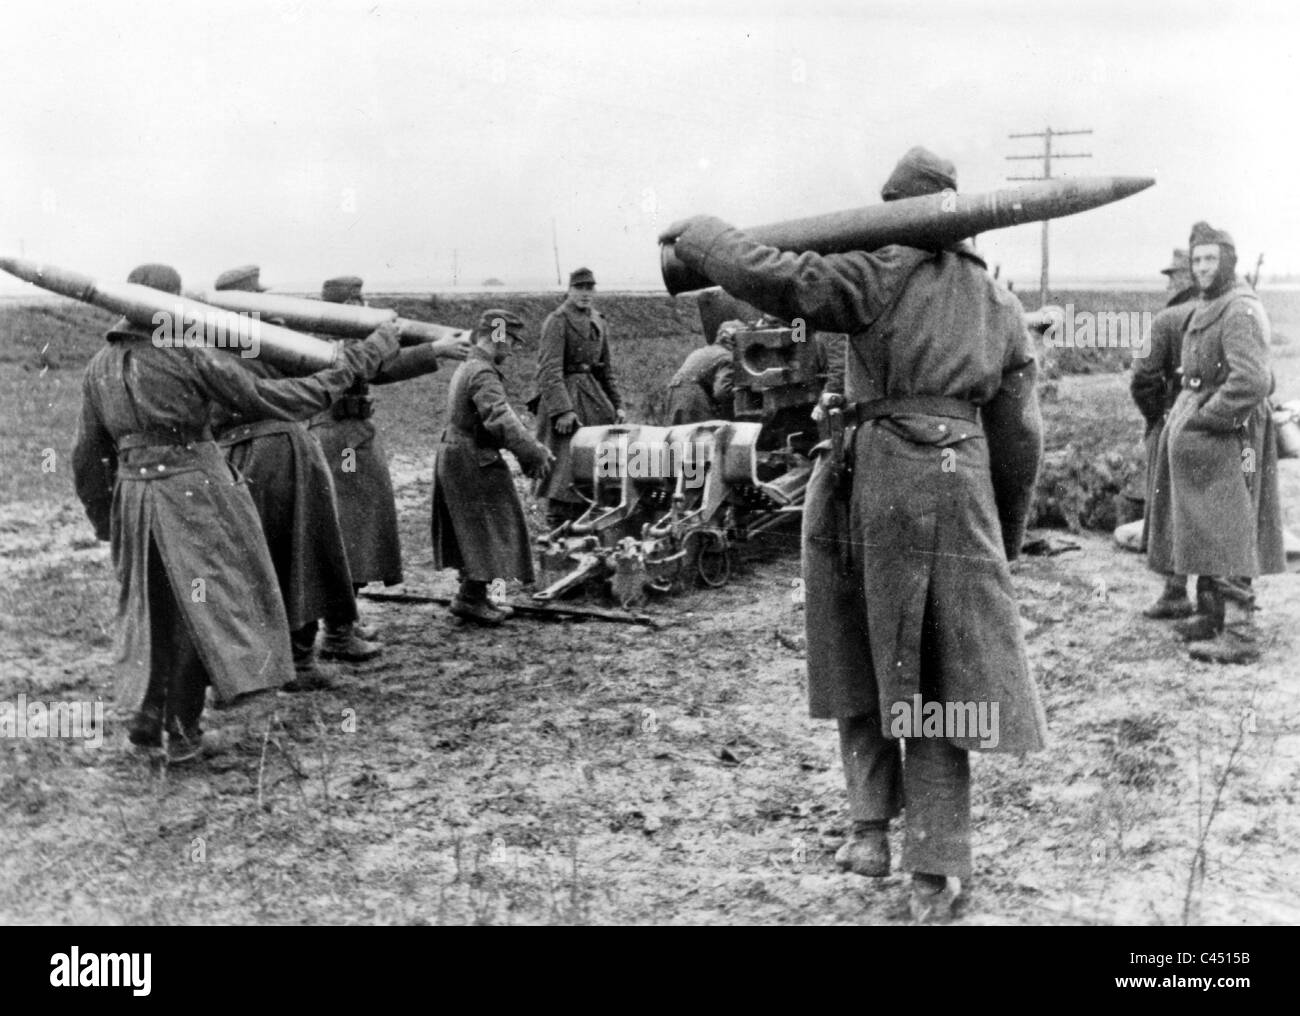 German 8,8cm antitank gun PAK 43 at Shitomir (Zhytomyr), December 1943 - Stock Image